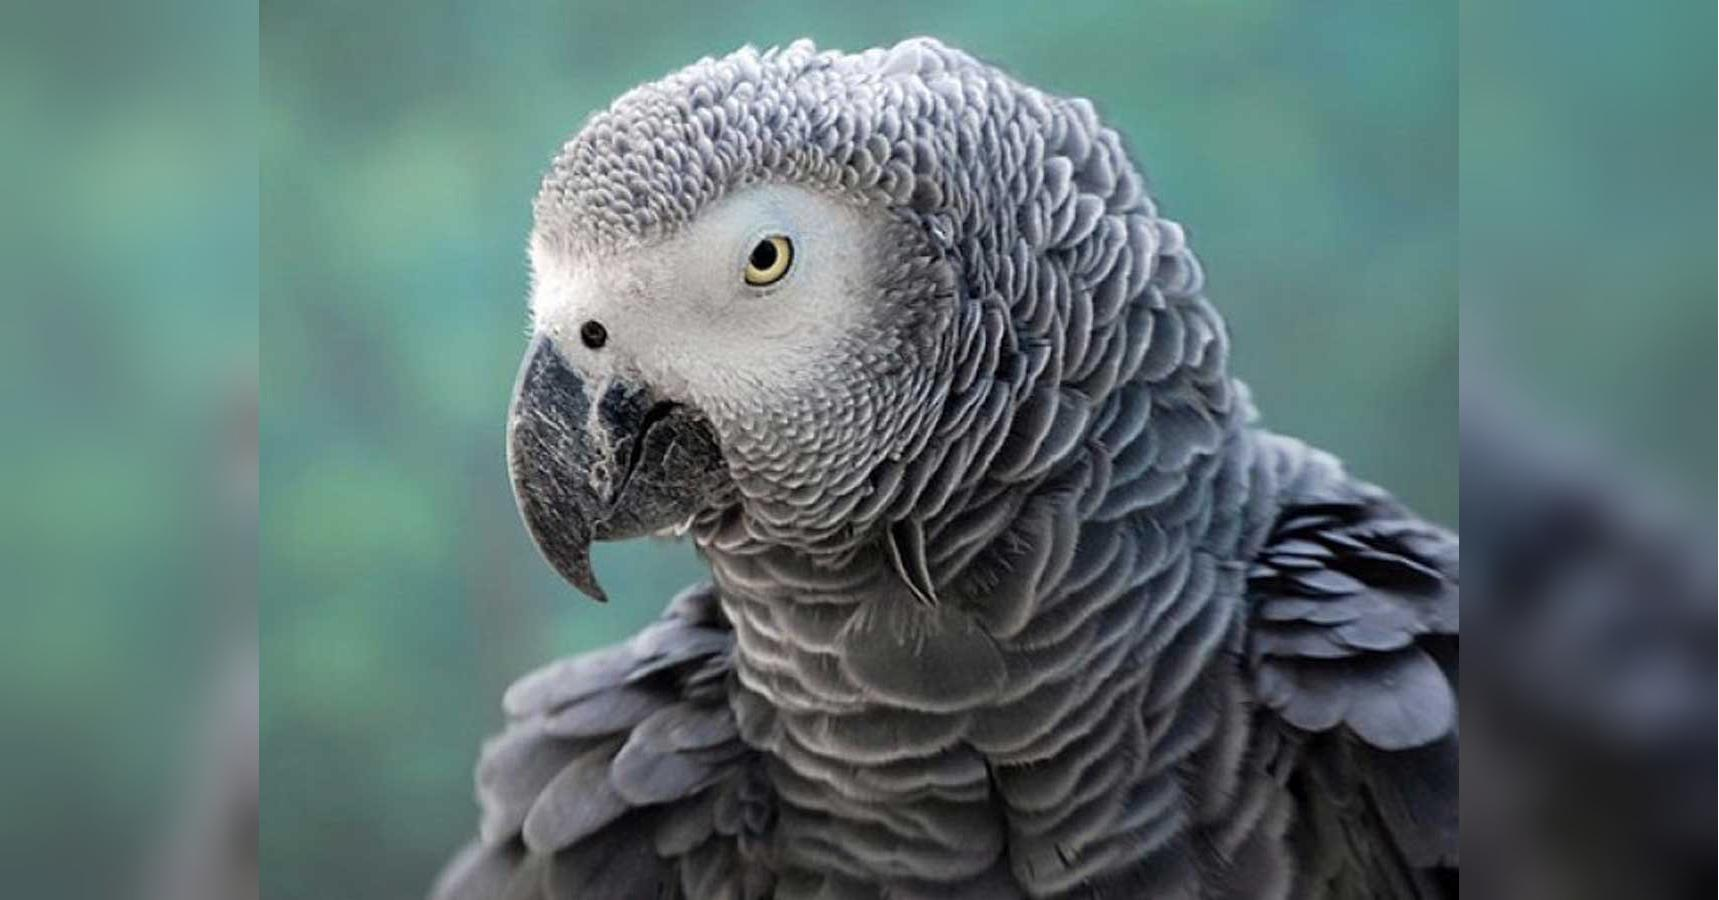 Parrots in wildlife park removed from public area after cursing at visitors